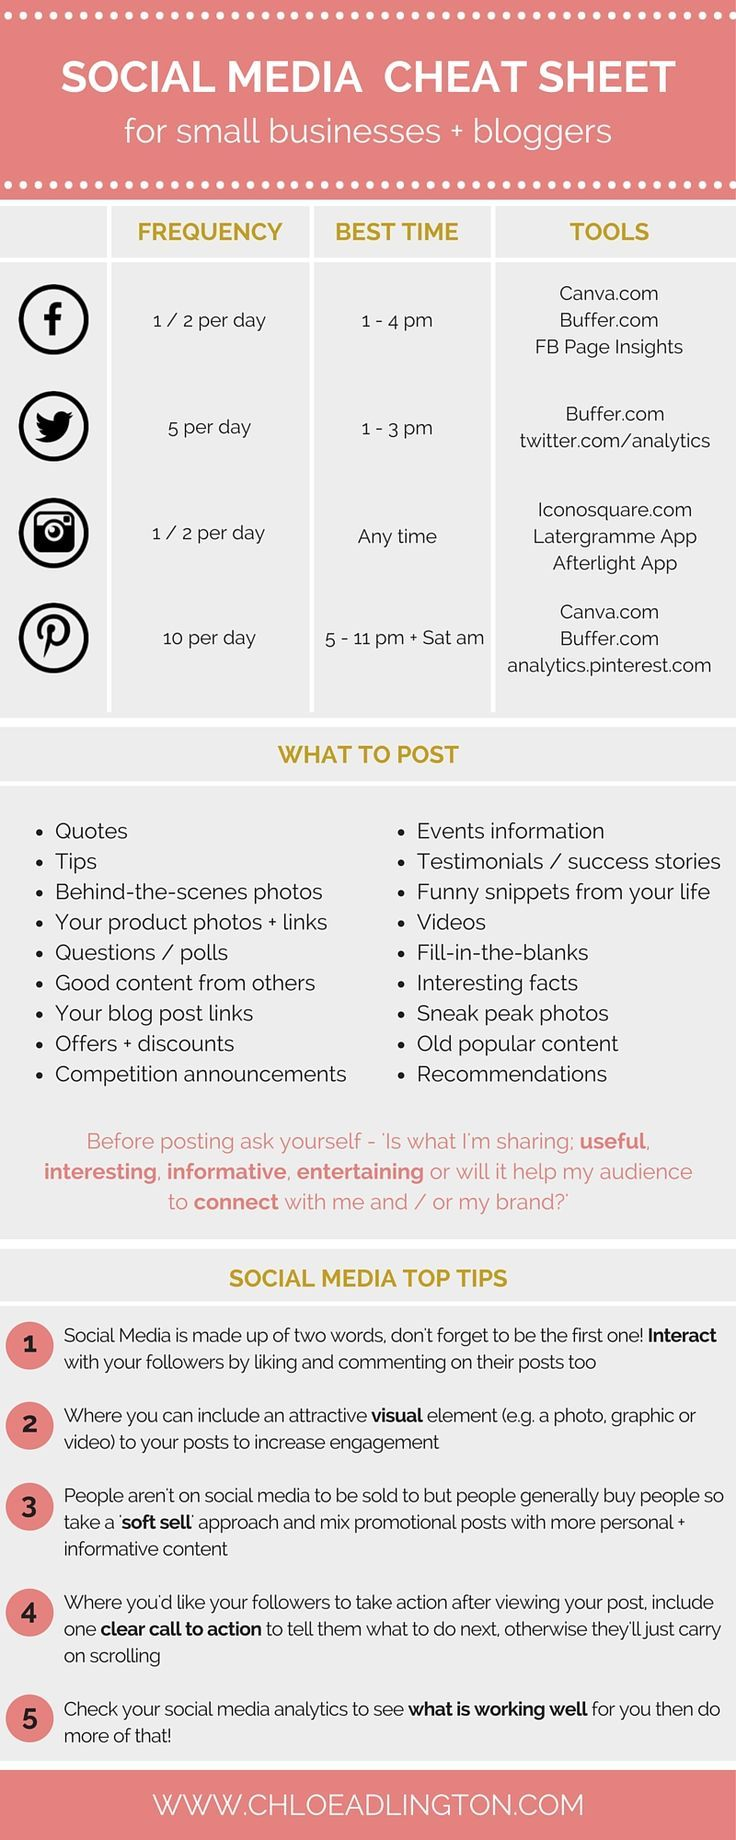 A social media cheat sheet for small businesses and bloggers - a useful infographic on what to post on social media, when and what tools to use!                                                                                                                                                                                 More…